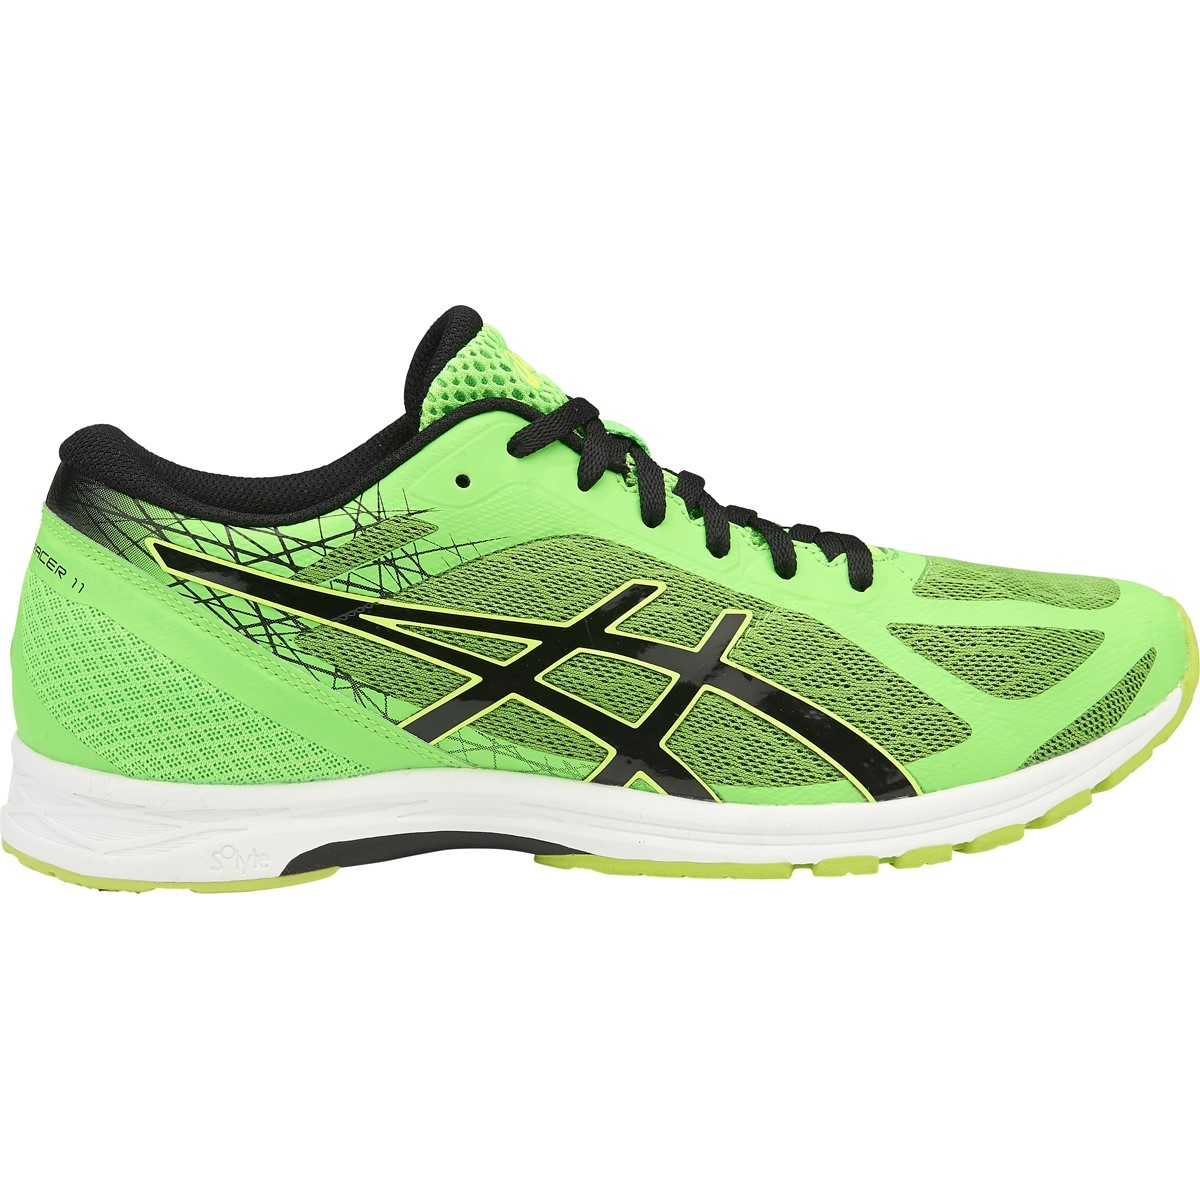 Asics Gel DS Racer 11 - Mens Running Shoes